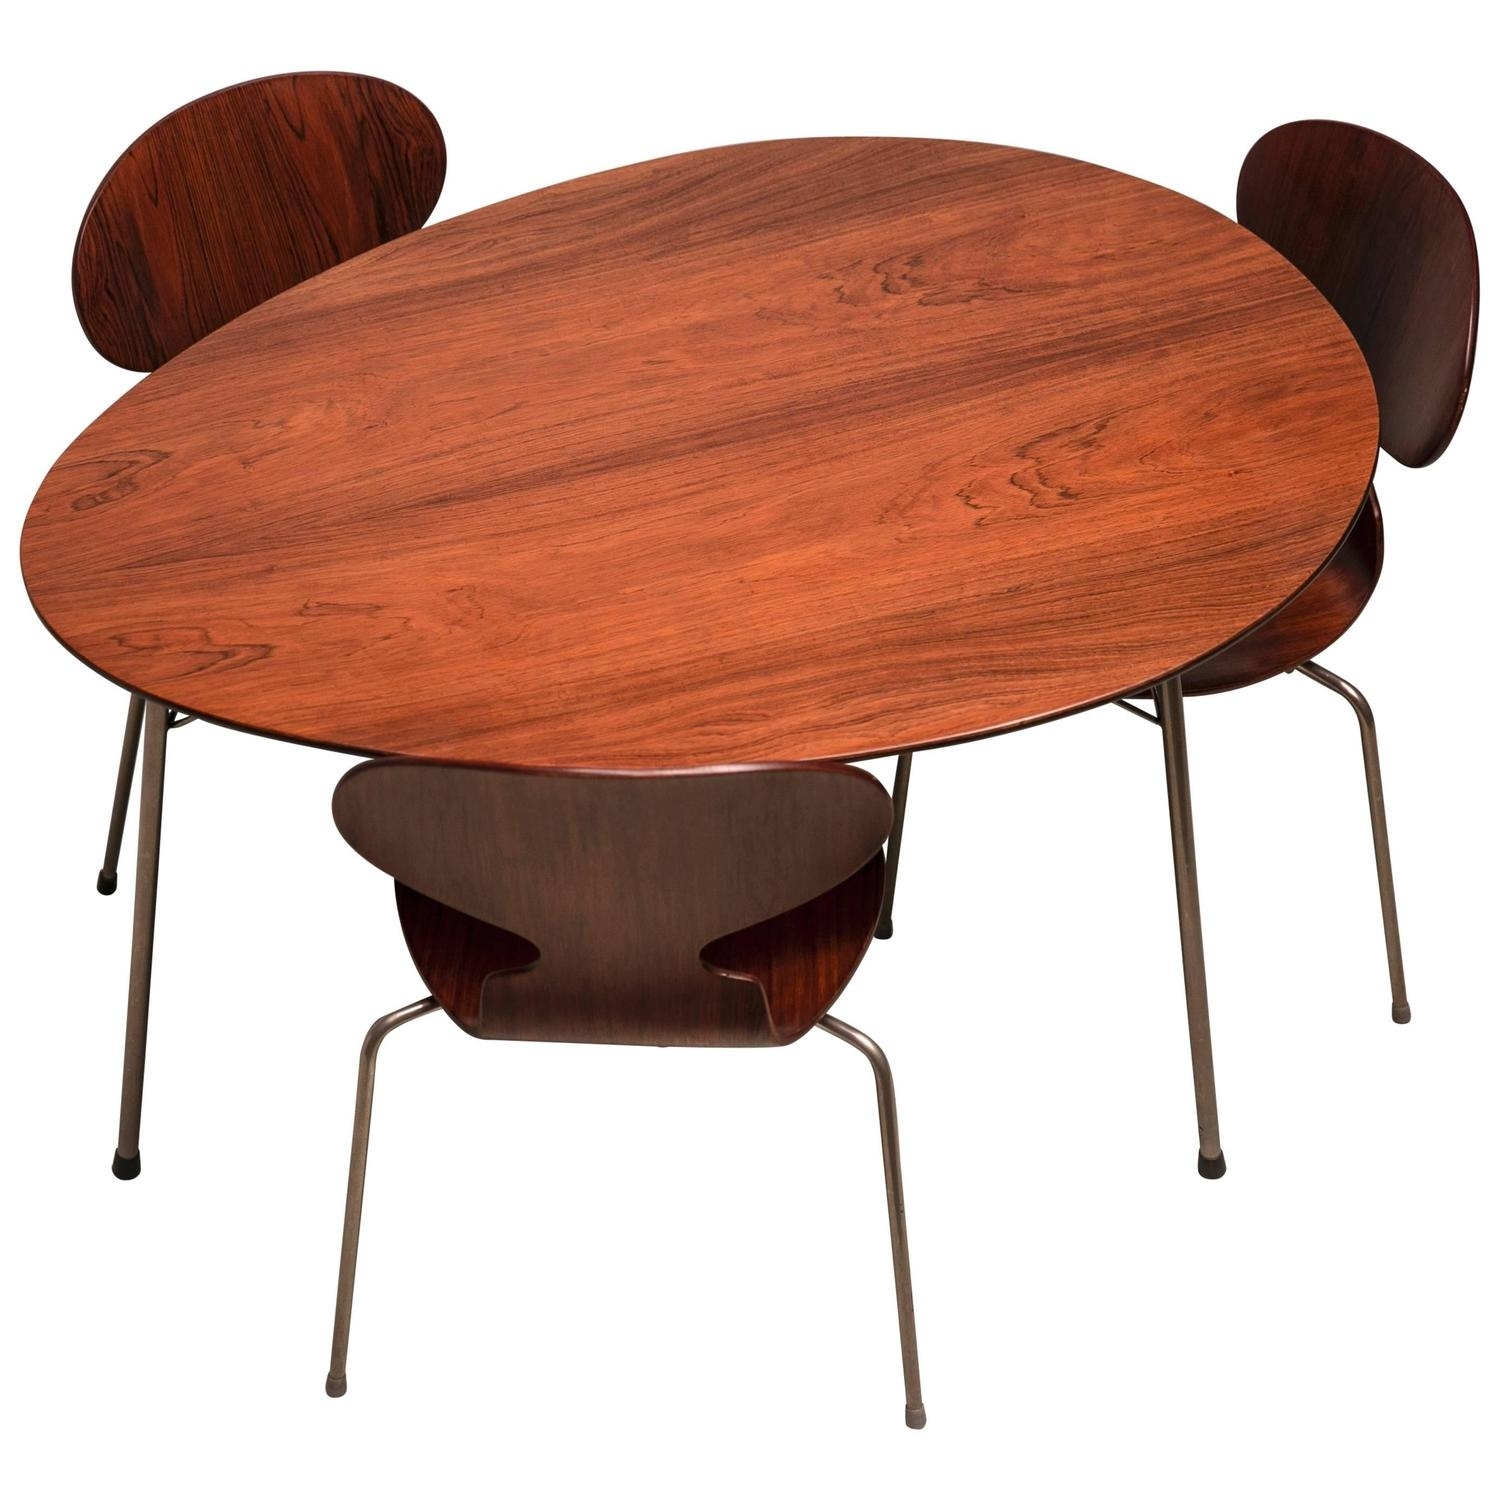 Exceptional Early Brazilian Rosewood Egg Table And Ant Chairs throughout Mid-Century Modern Egg Tables (Image 5 of 30)